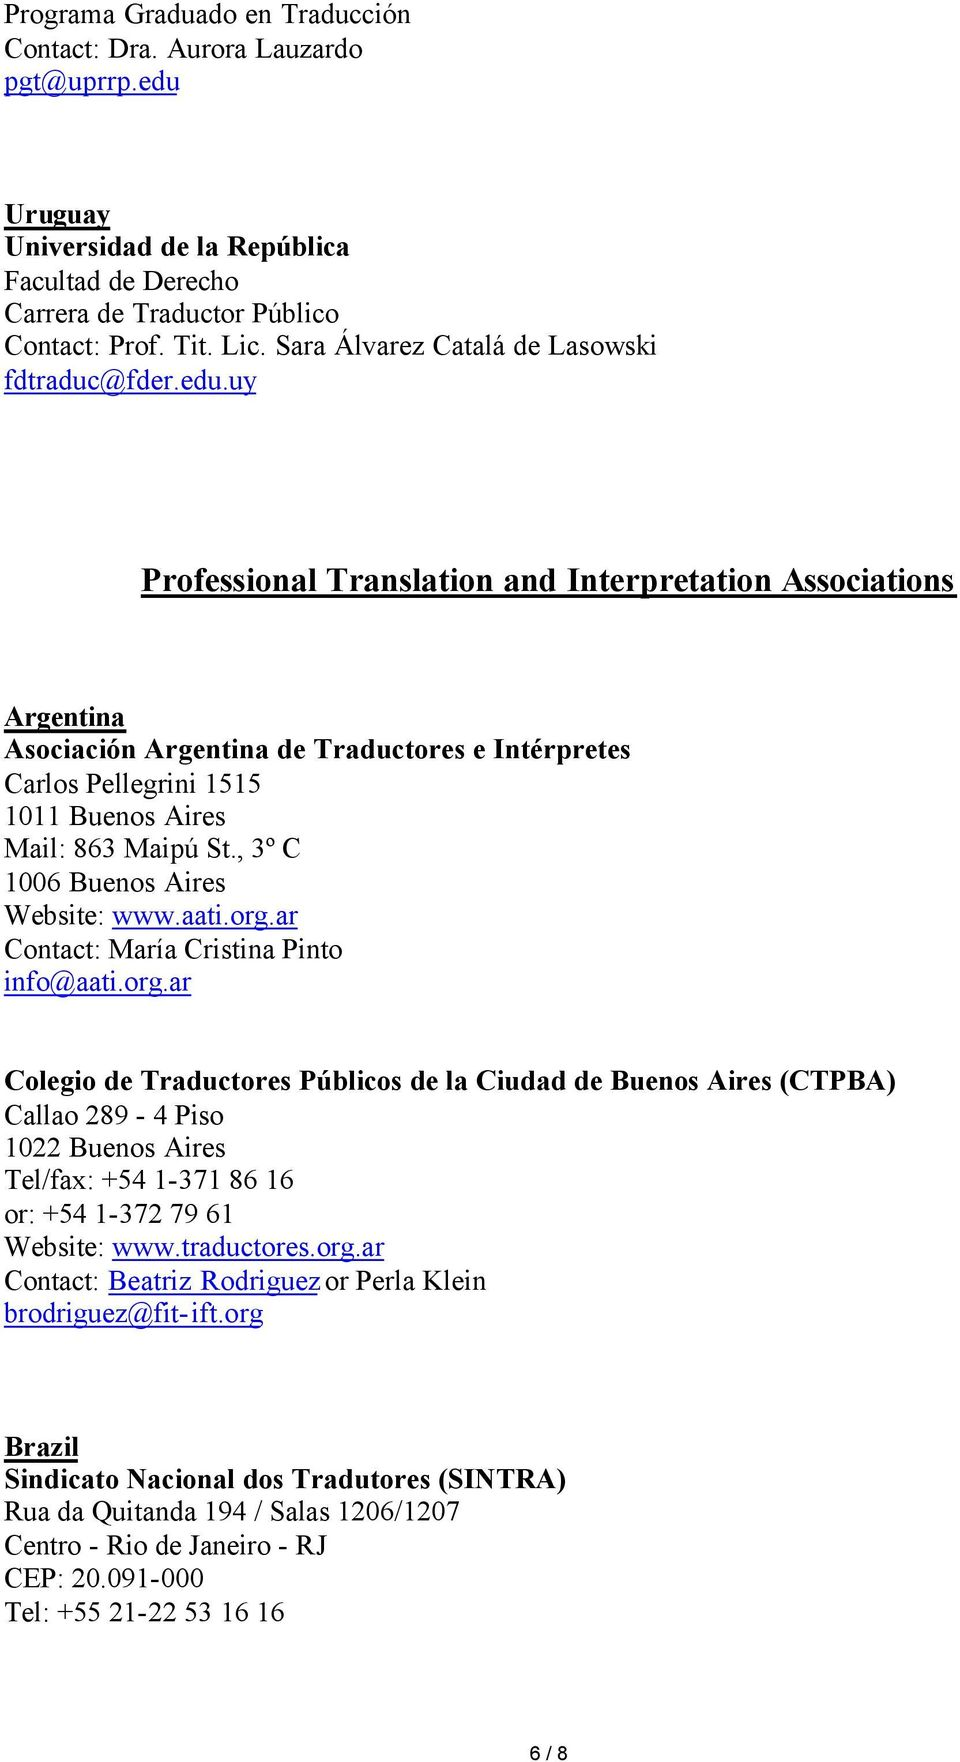 uy Professional Translation and Interpretation Associations Argentina Asociación Argentina de Traductores e Intérpretes Carlos Pellegrini 1515 1011 Buenos Aires Mail: 863 Maipú St.